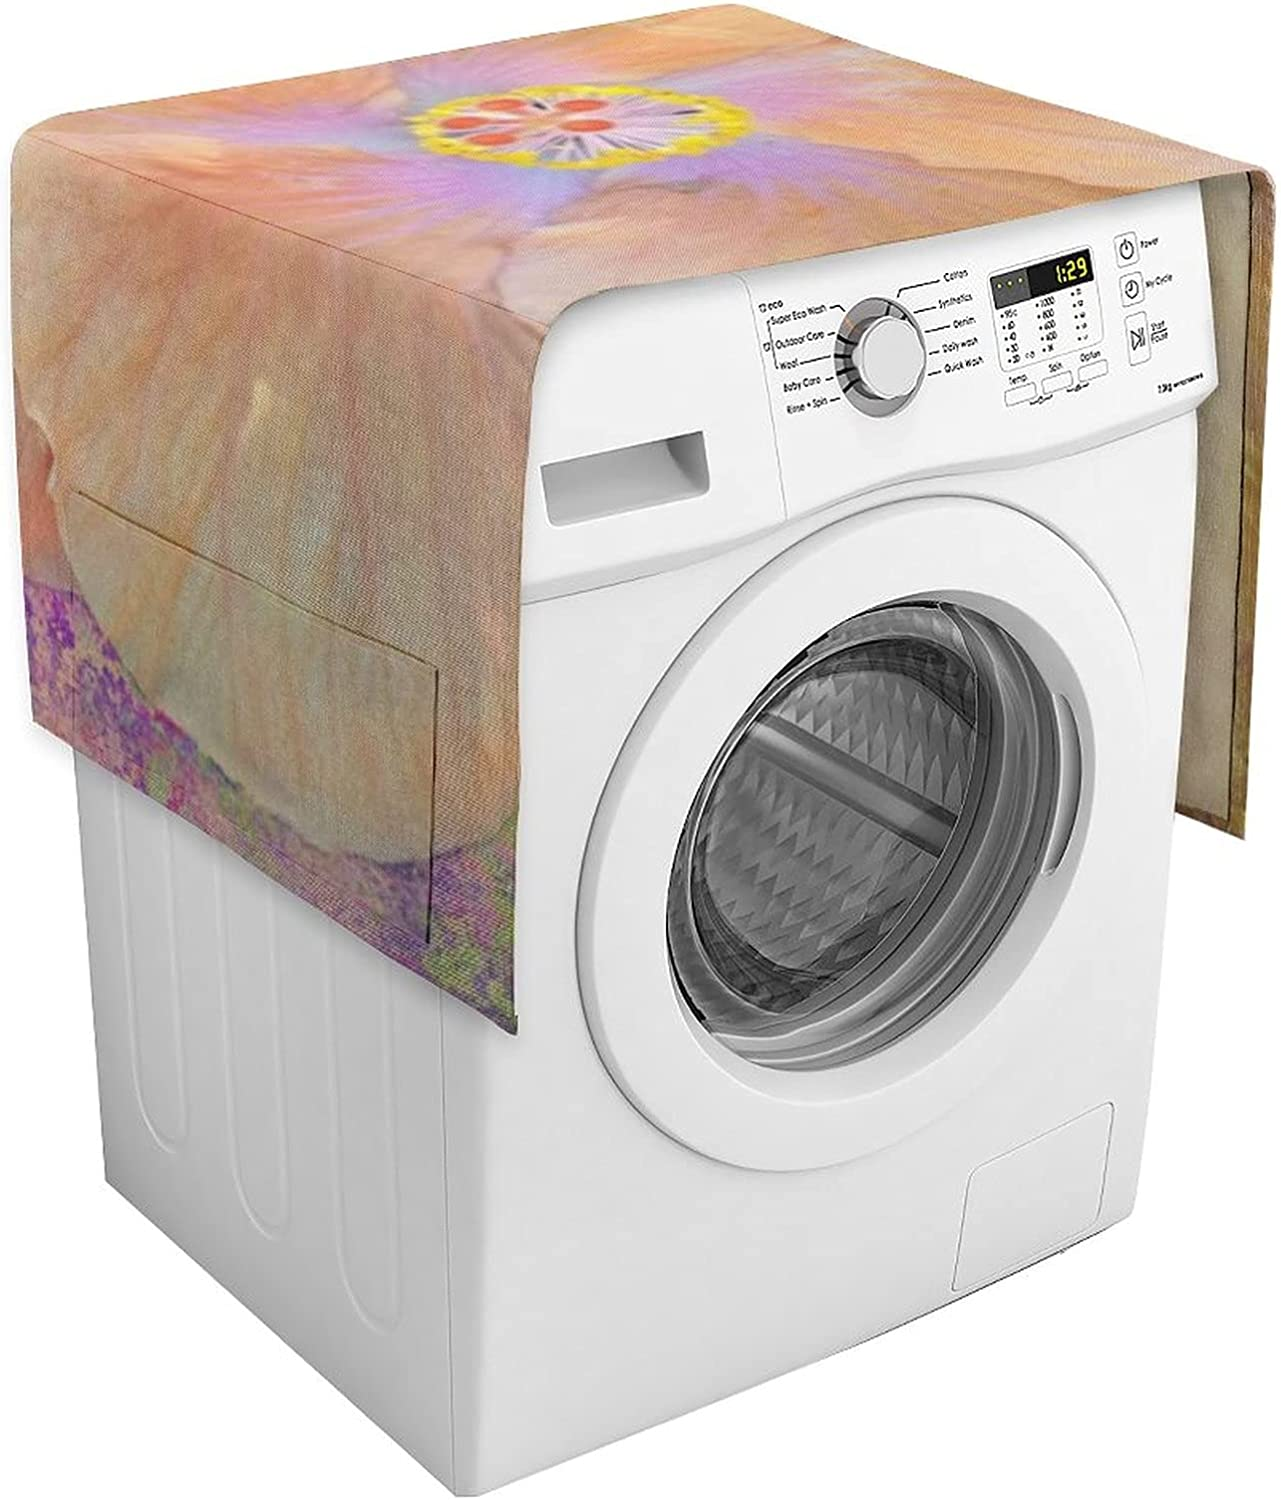 Japan Maker New favorite Multi-Purpose Washing Machine Covers Appliance Protector Washer